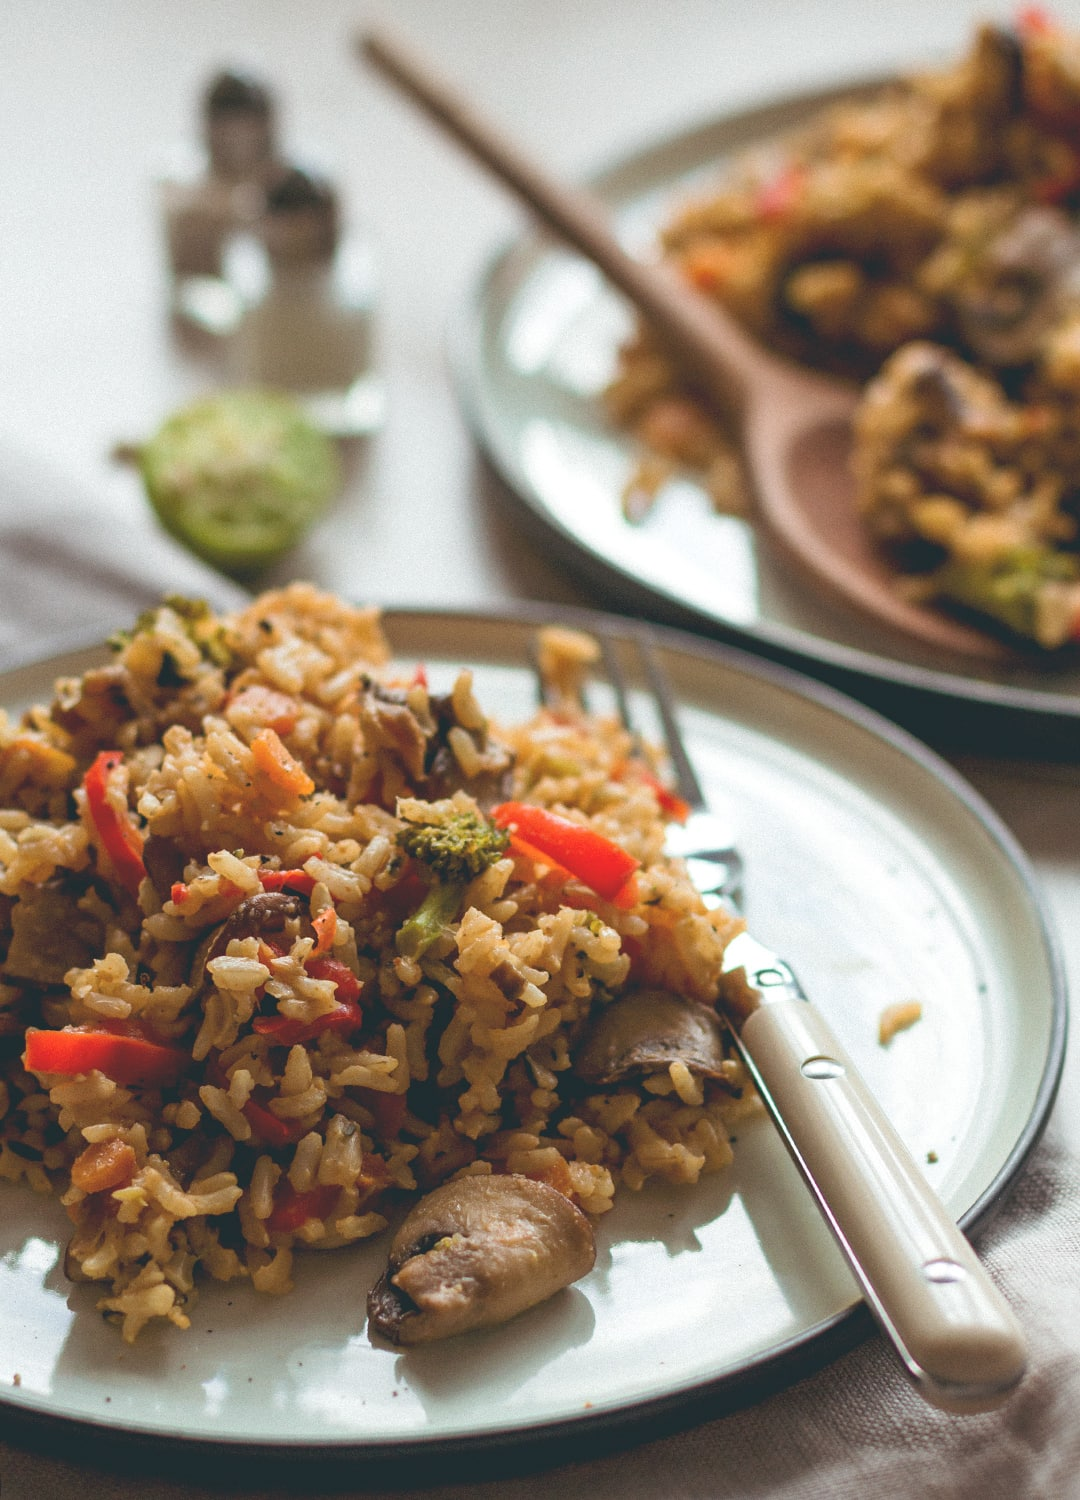 Loaded Veggie Fried Rice - the most comforting, filling, hearty recipe. Made with brown rice, mushrooms, veggies, spices, and tamari almond butter dressing. (vegan, GF) | thehealthfulideas.com